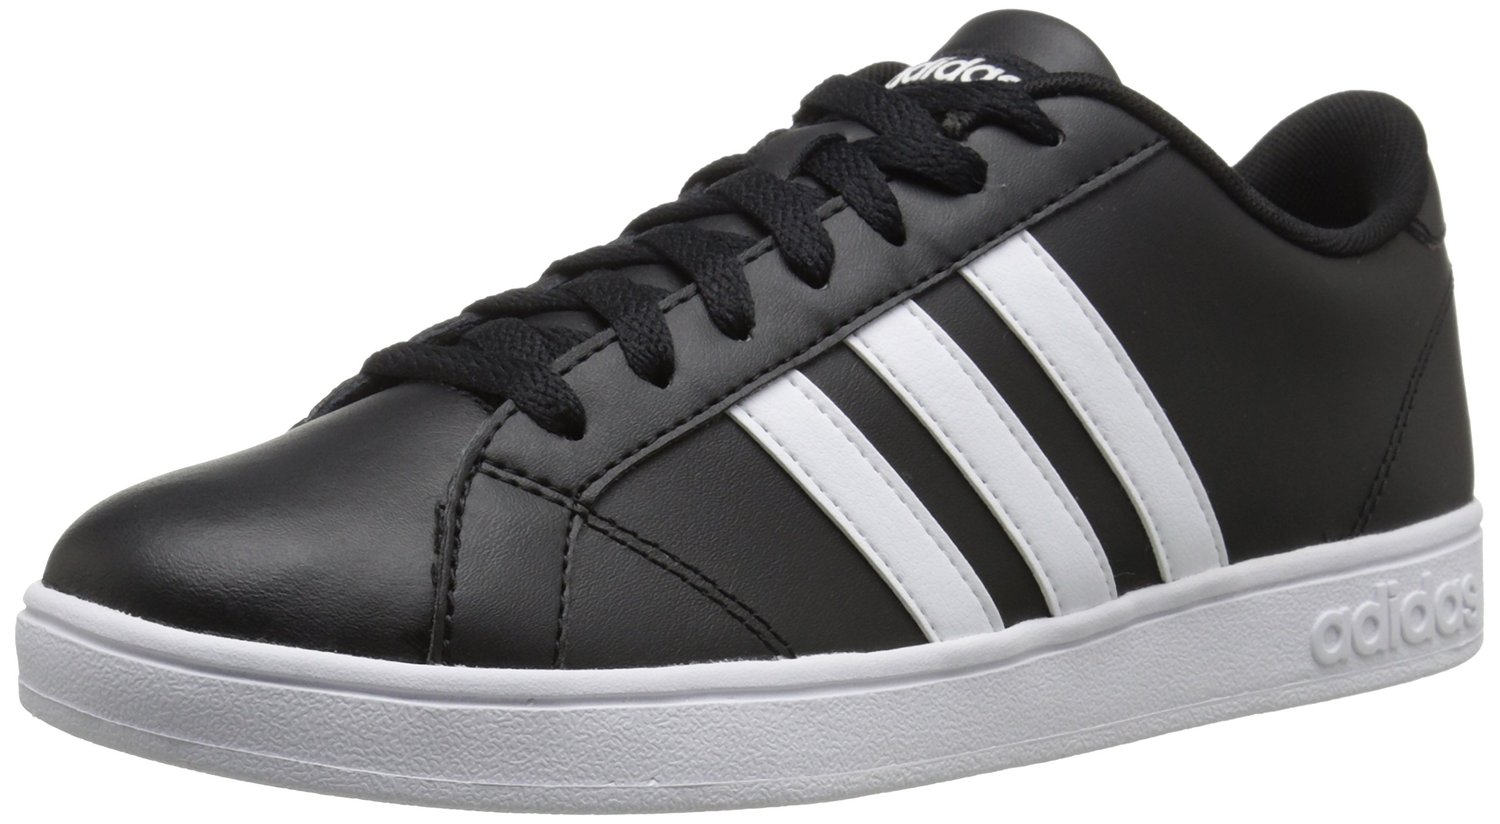 Adidas Shoes Baseline Women S